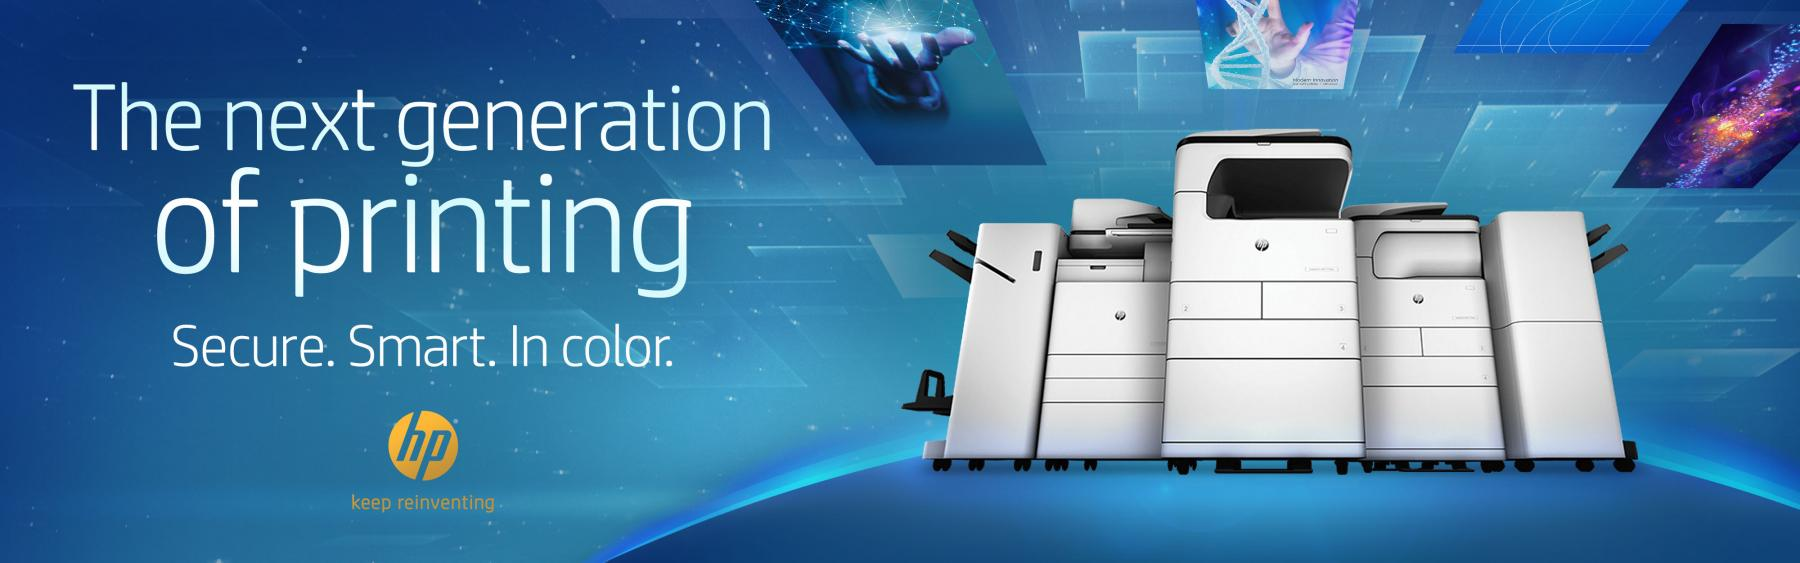 A3 Photo Printing A3 Printing Portfolio Systel Business Equipment